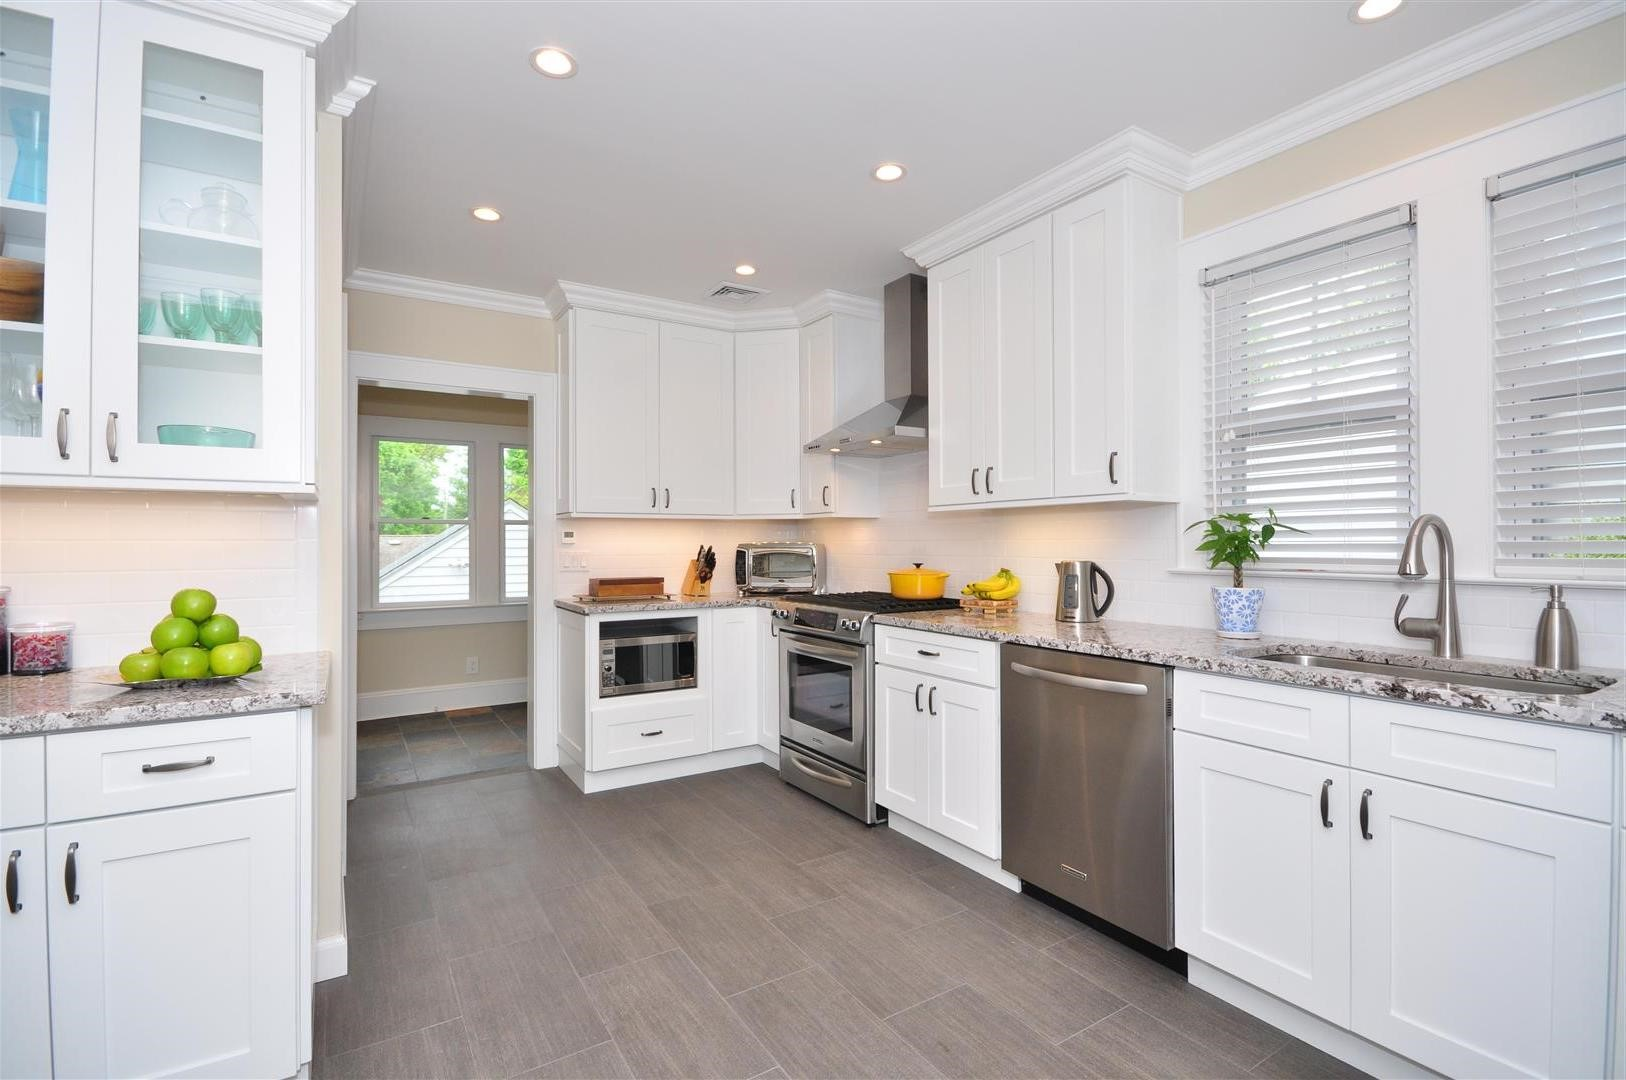 White Shaker Kitchen Cabinets white shaker kitchen cabinets » alba kitchen design center